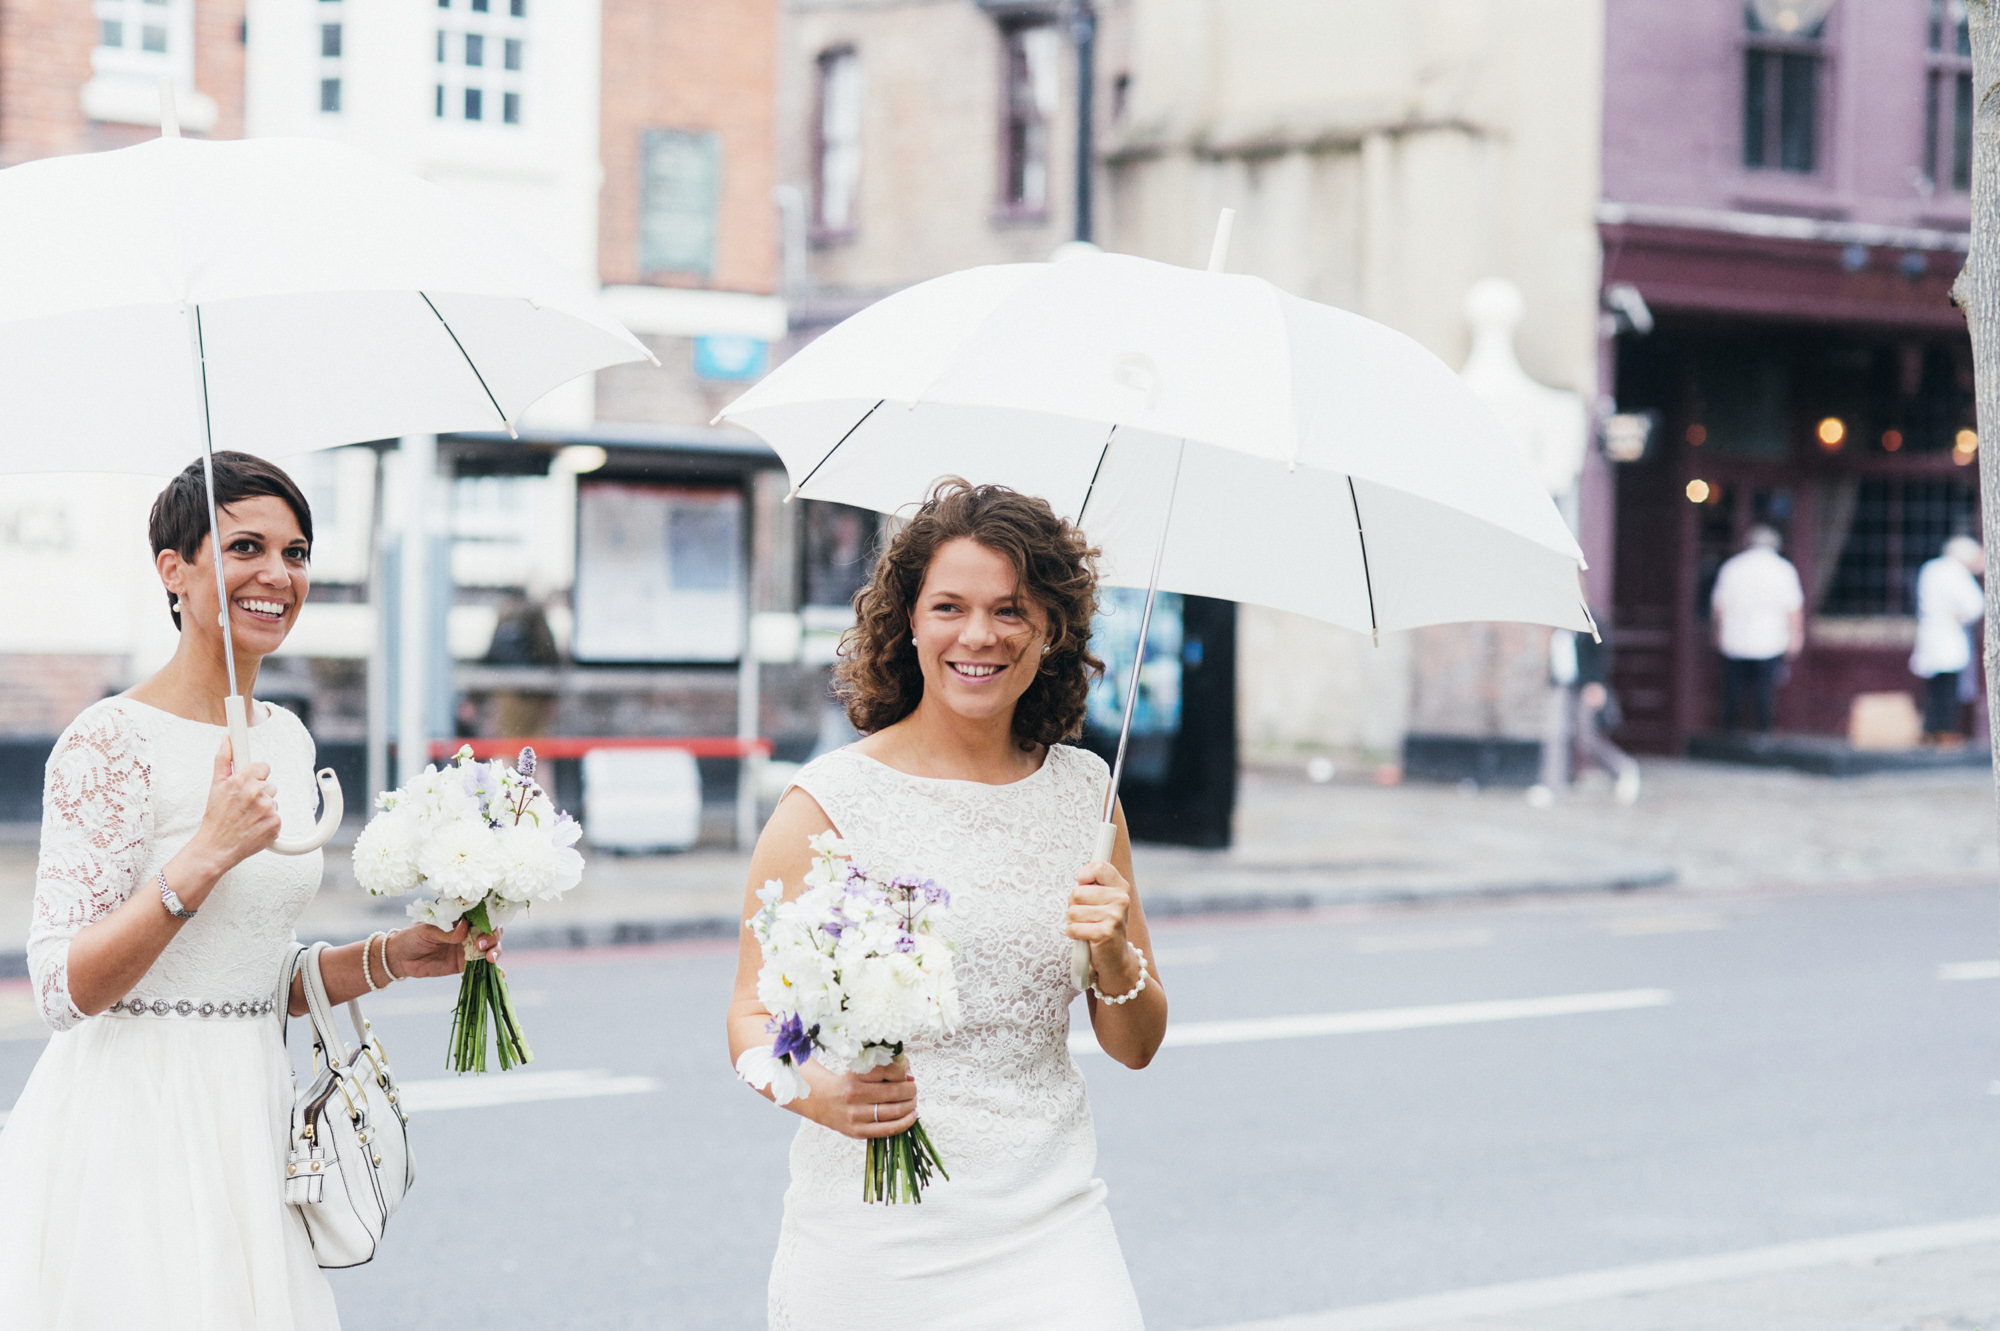 gay wedding brides in lace wedding dresses with white umbrellas - gay wedding The Roost Dalston wedding - quirky London wedding photographer © Babb Photo